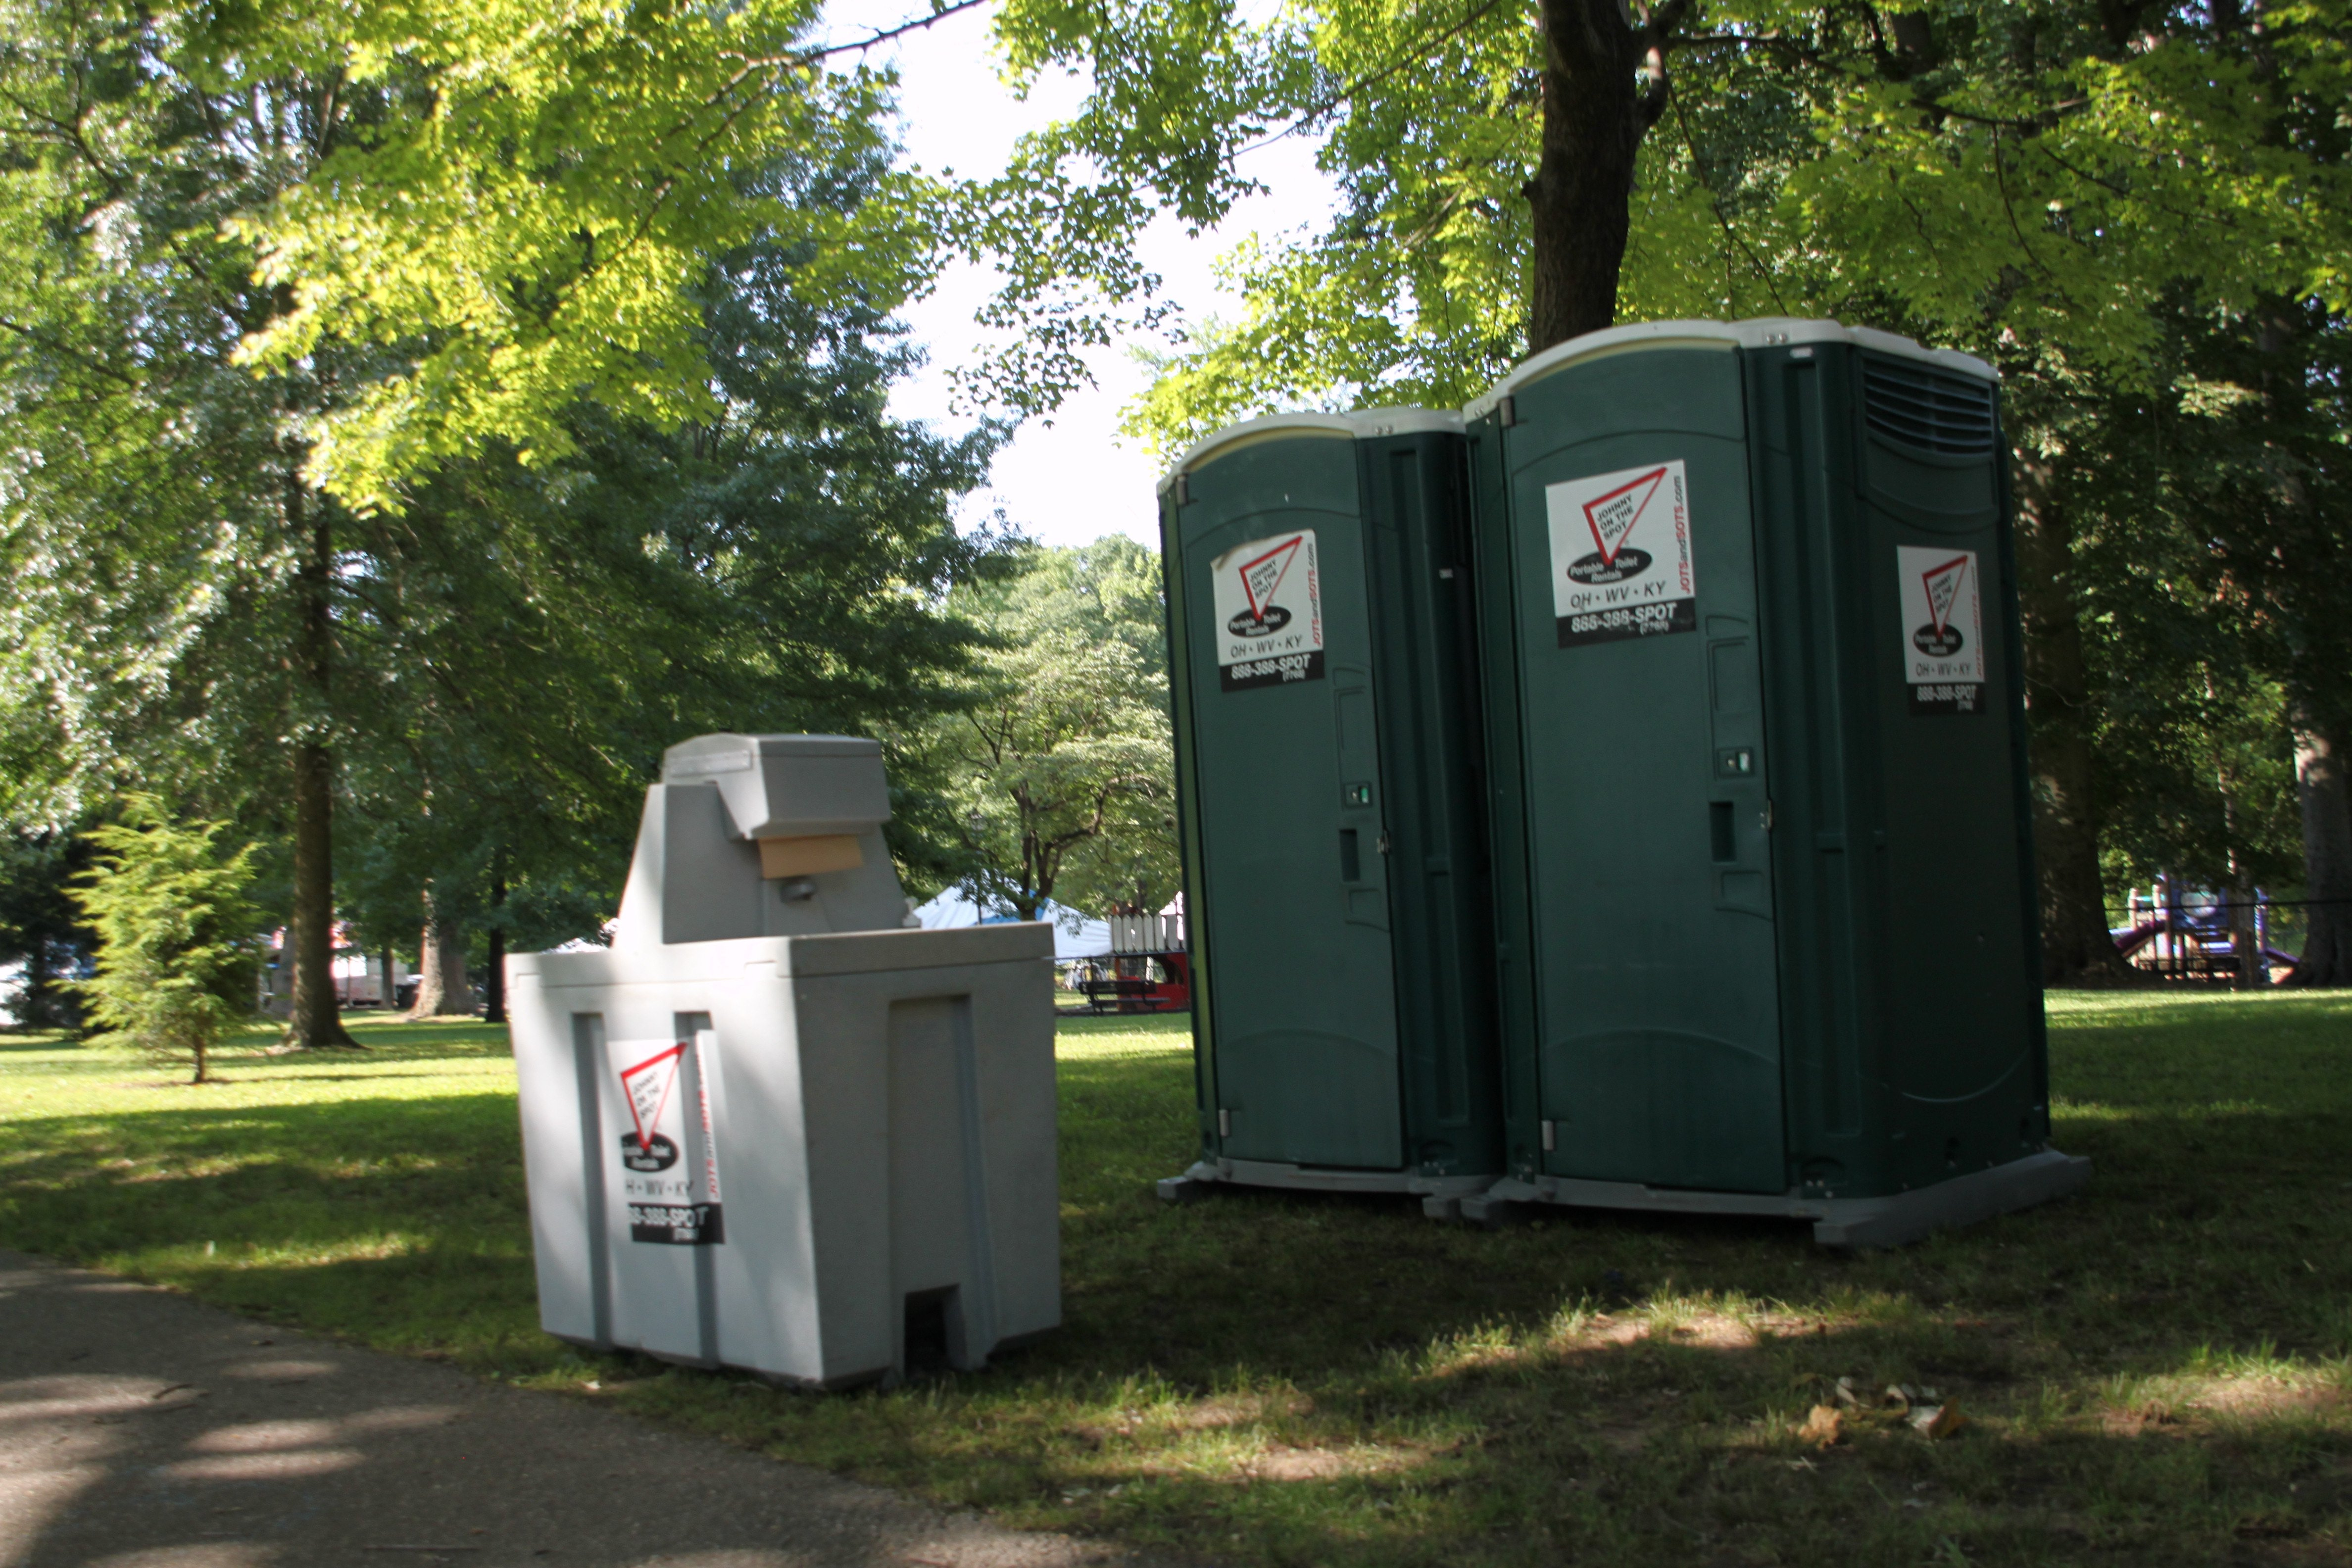 Johnny on the spot portable toilets and porta potty - Portable bathroom rentals for weddings ...